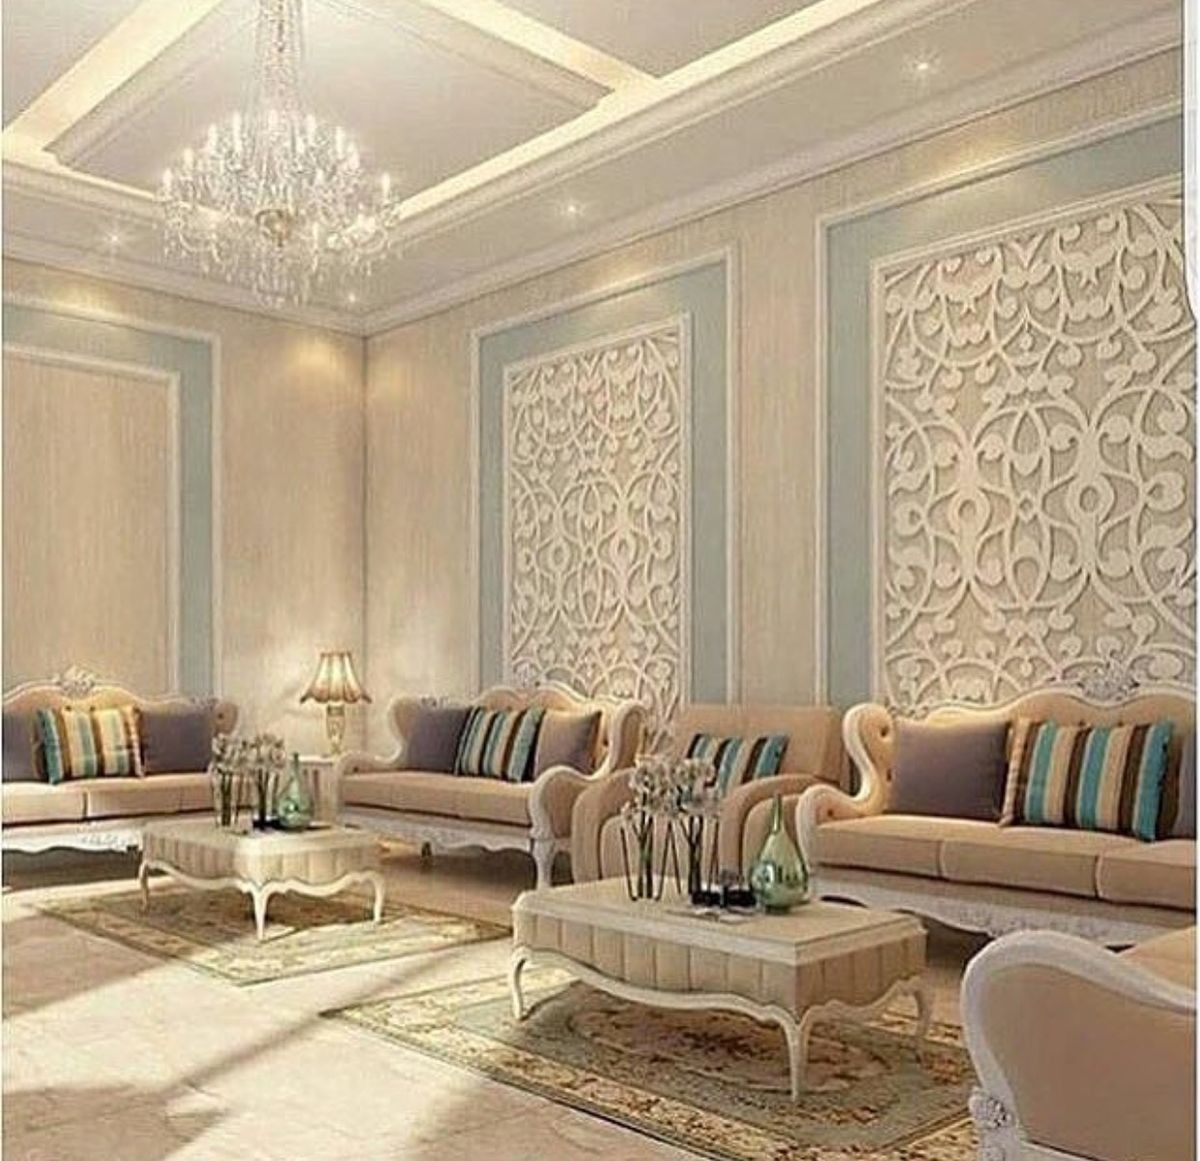 Home Decor 2012 Luxury Homes Interior Decoration Living: Pin By PANE PENA On Konis In 2019